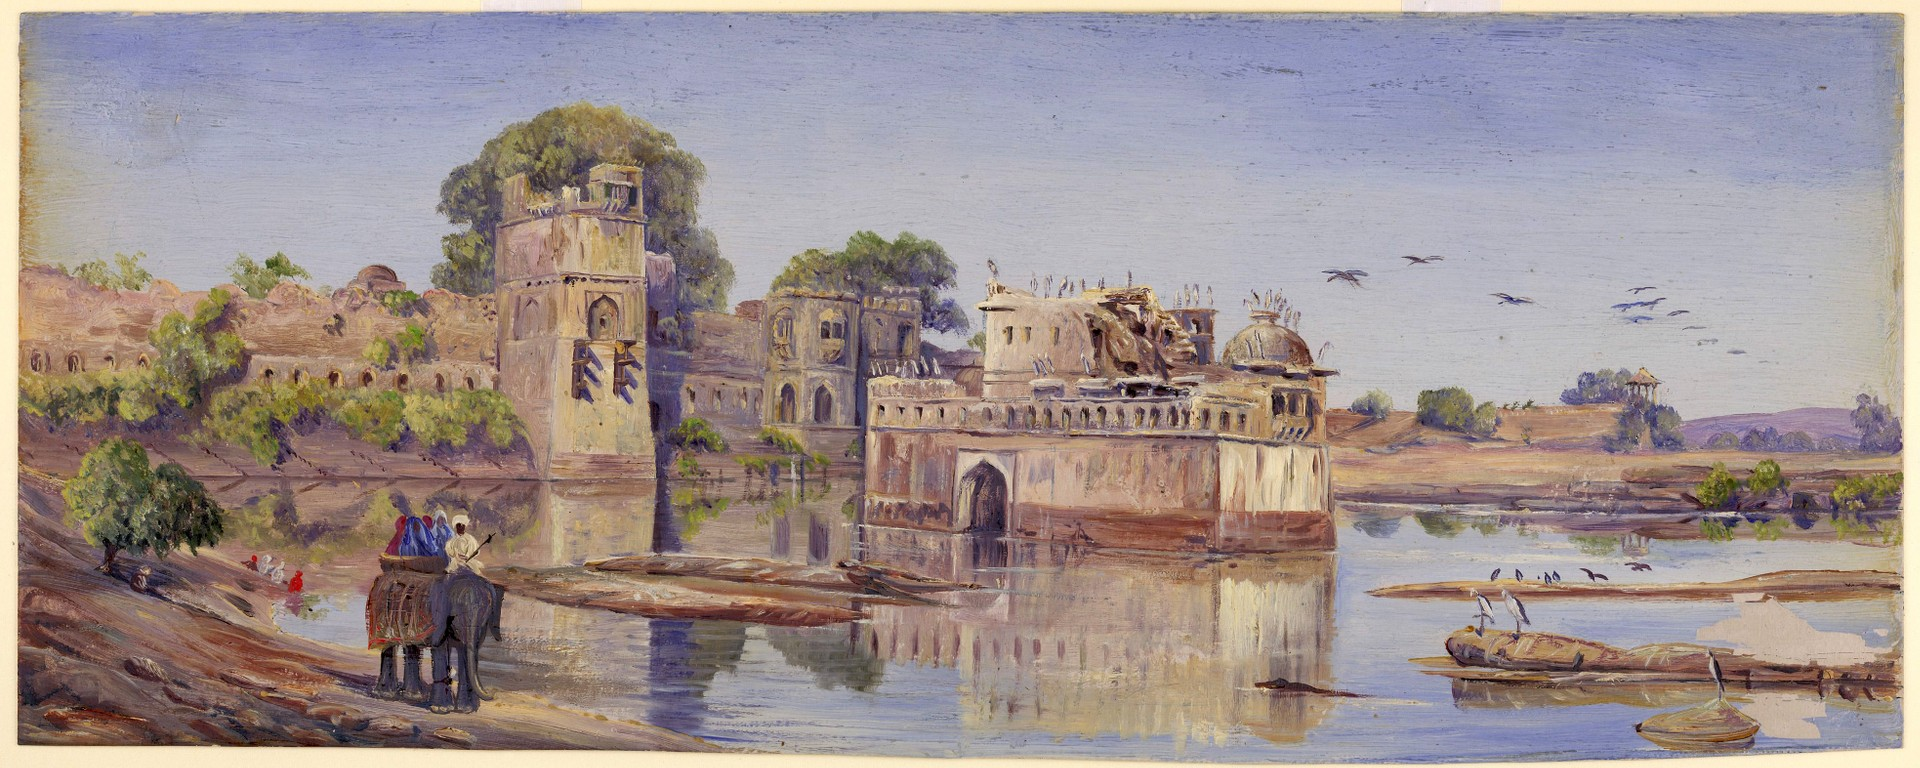 Marianne North painting of India